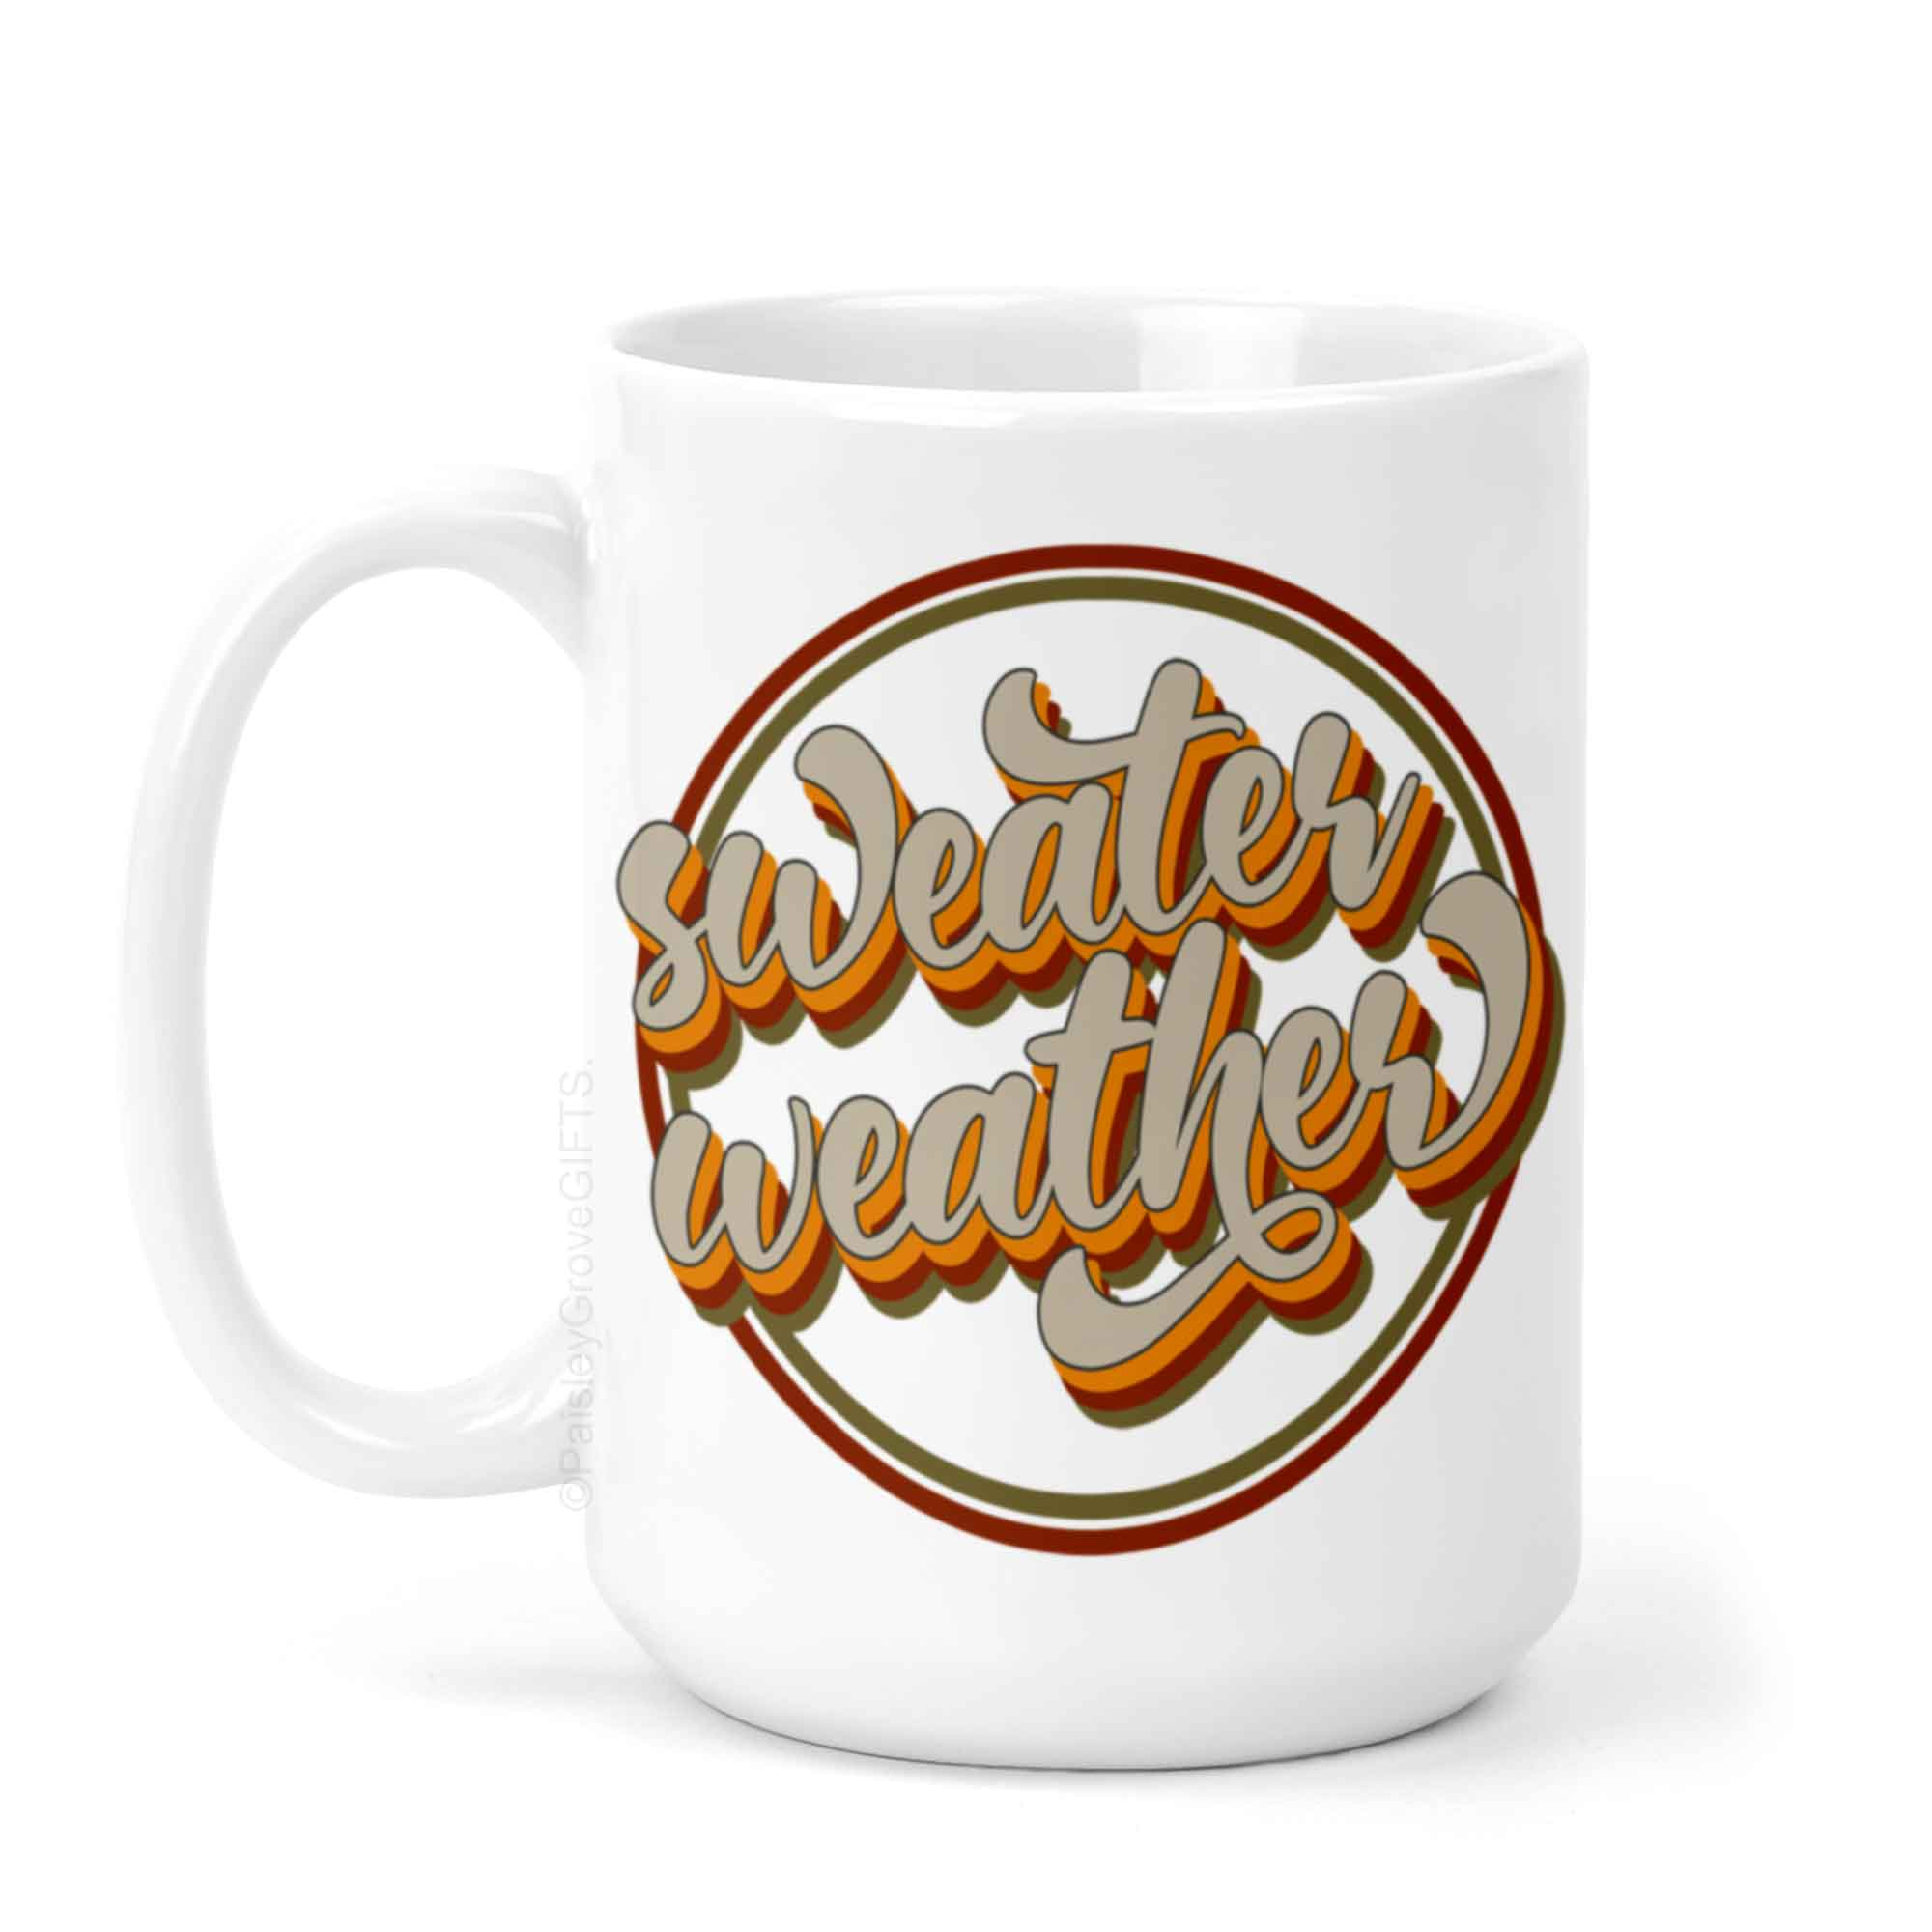 CopyrightPaisleyGroveGIFTS P002a Sweater Weather Coffee Mug in Retro Fall Colors PSL Mug